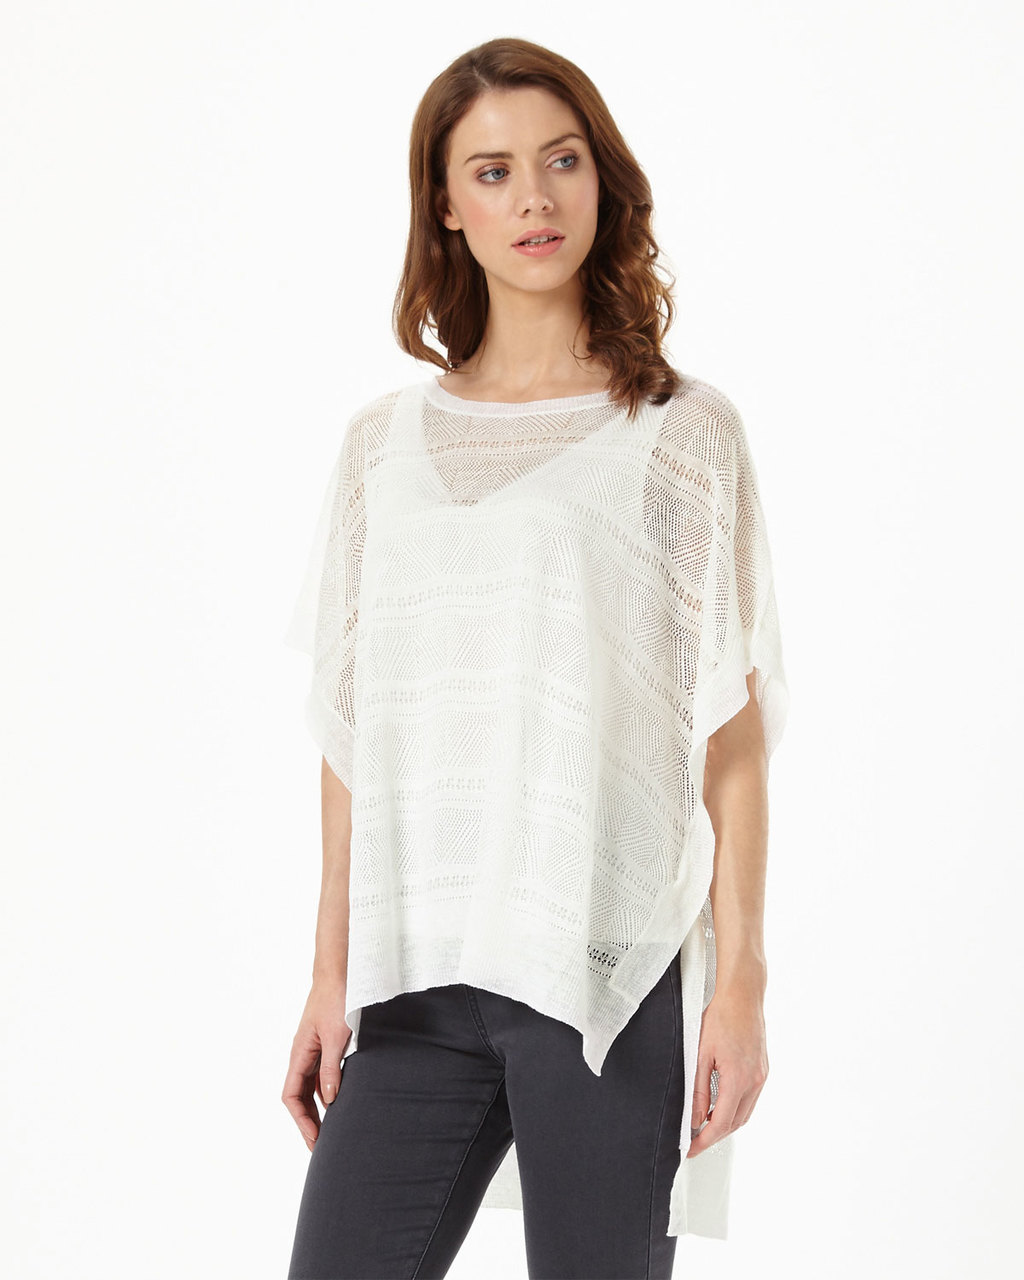 Dani Delicate Stitch Poncho - neckline: slash/boat neckline; sleeve style: dolman/batwing; pattern: horizontal stripes; style: poncho; predominant colour: white; occasions: casual; length: standard; fibres: cotton - mix; fit: loose; sleeve length: short sleeve; pattern type: knitted - fine stitch; pattern size: standard; texture group: net/tulle; season: s/s 2016; wardrobe: highlight